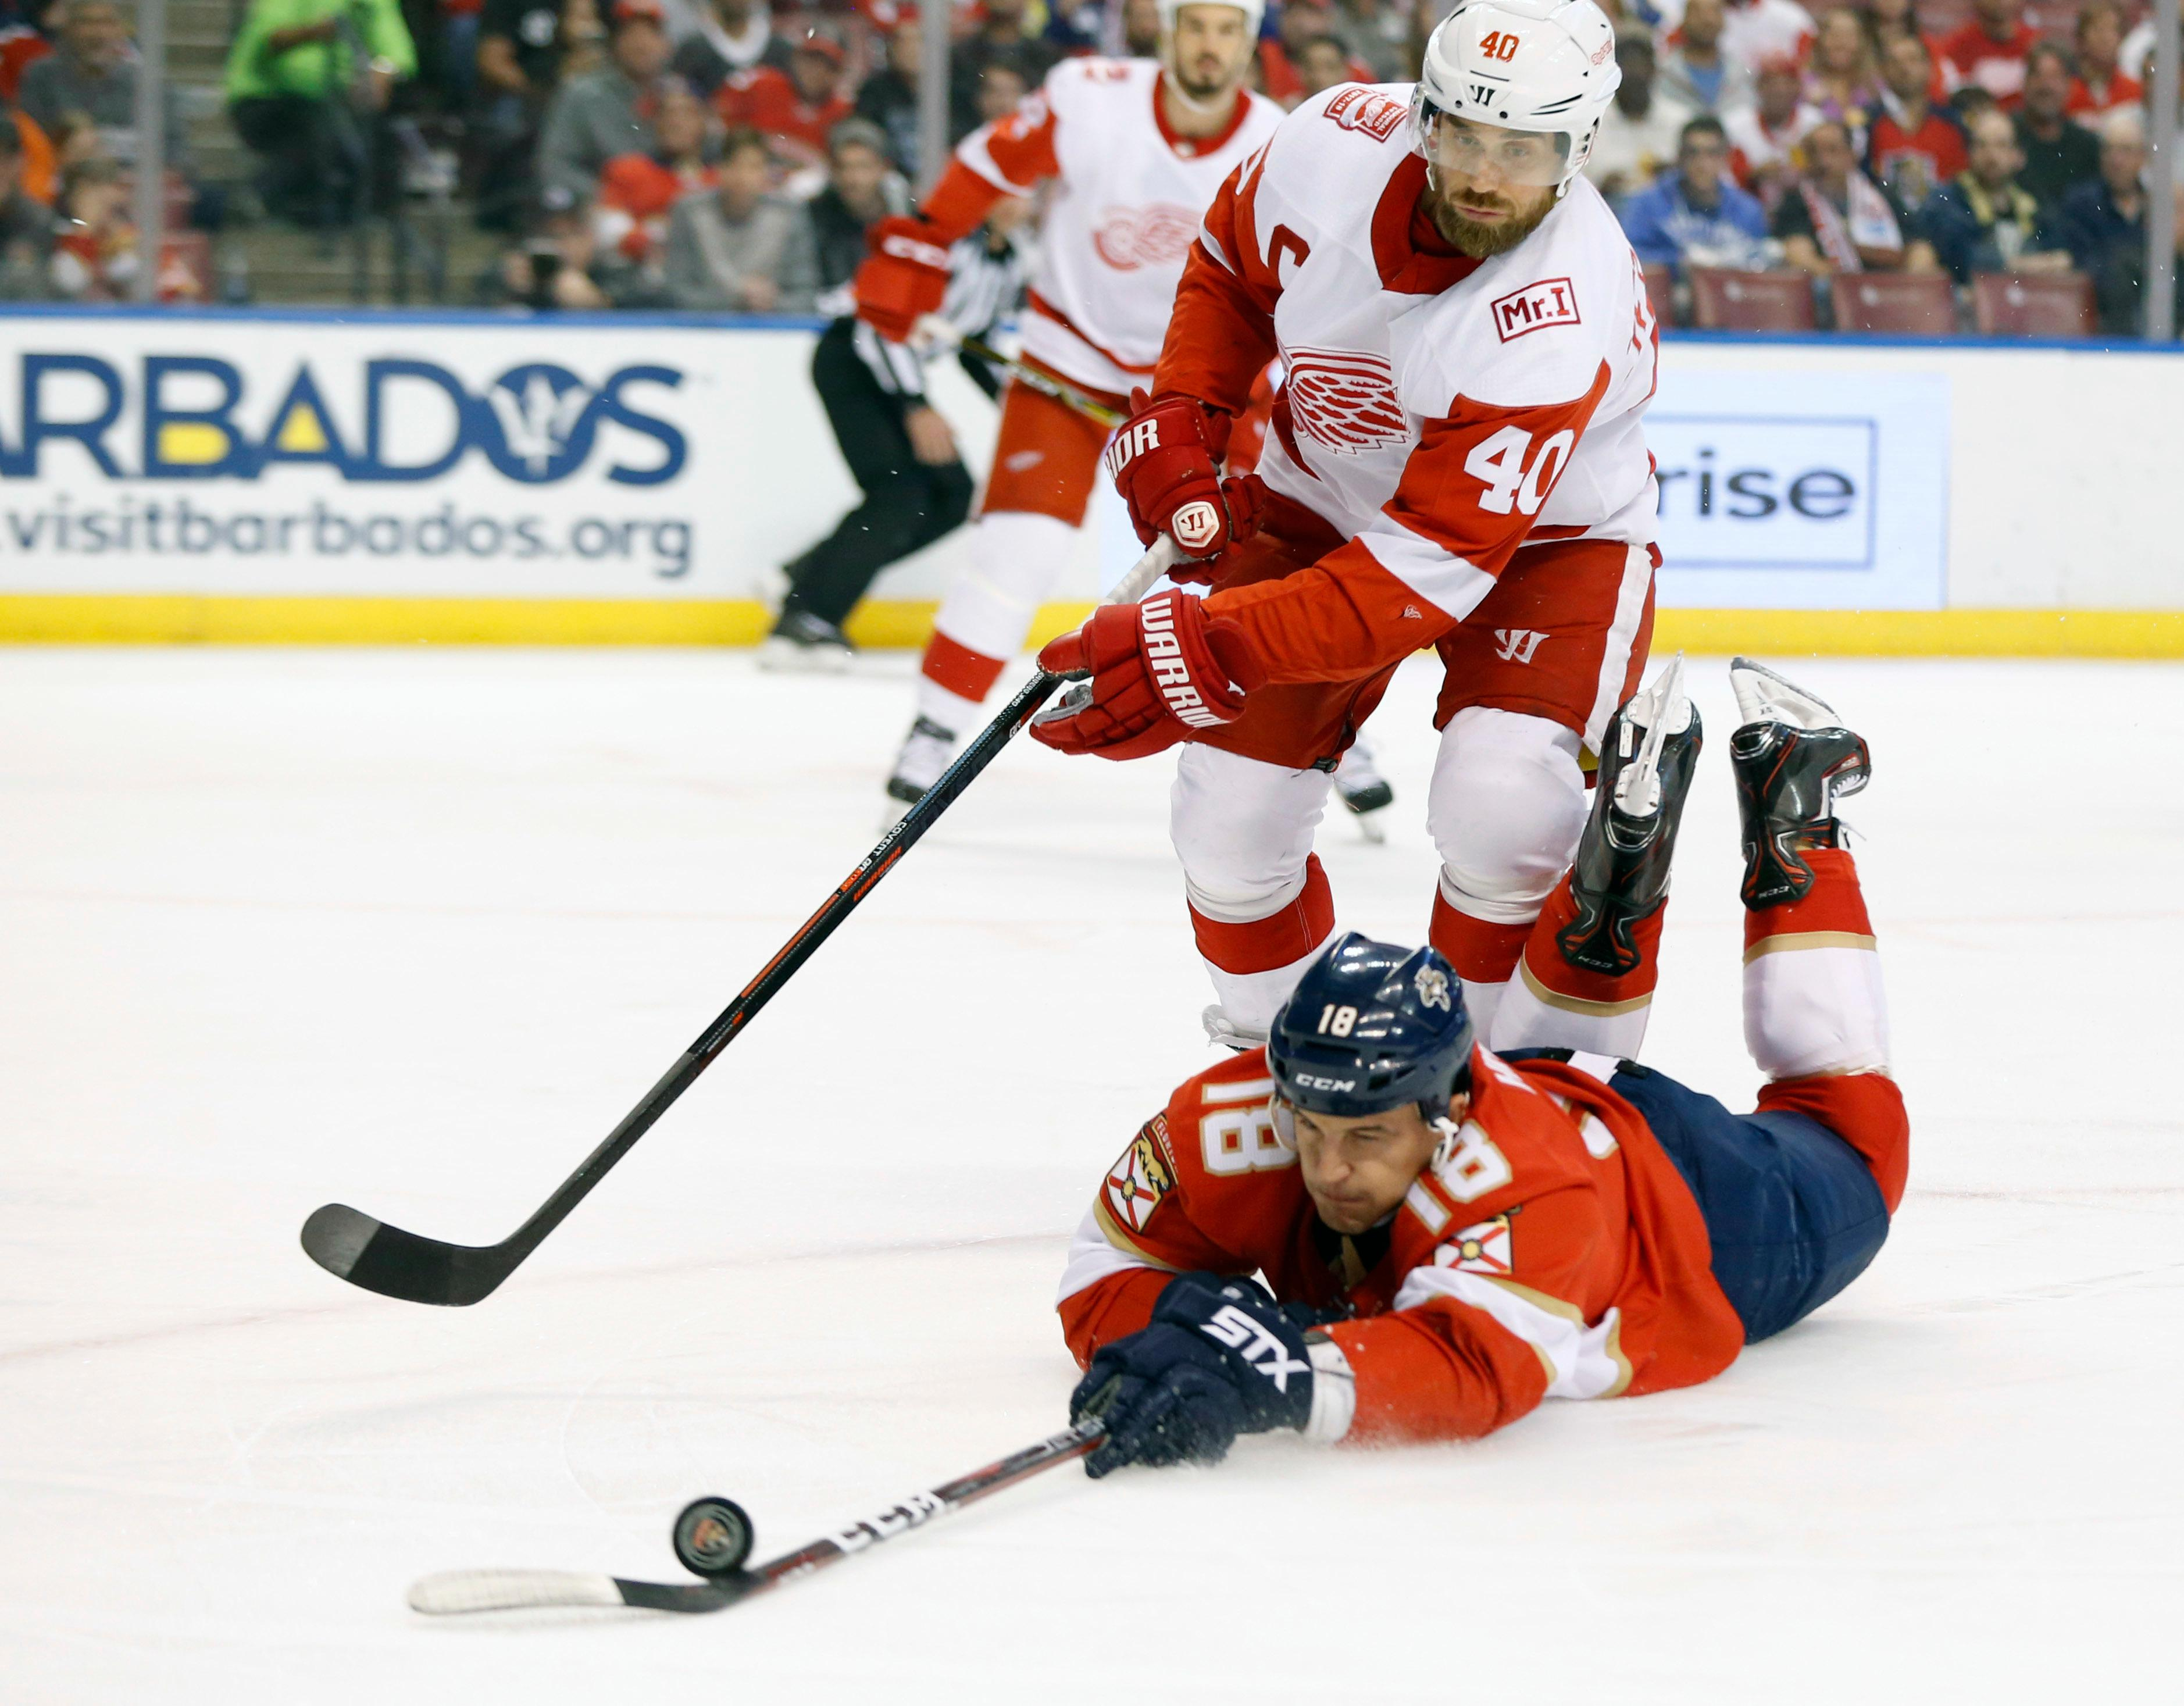 Florida Panthers center Micheal Haley (18) and Detroit Red Wings center Henrik Zetterberg (40) battle for the puck during the first period of an NHL hockey game, Saturday, Feb. 3, 2018 in Sunrise, Fla. (AP Photo/Wilfredo Lee)